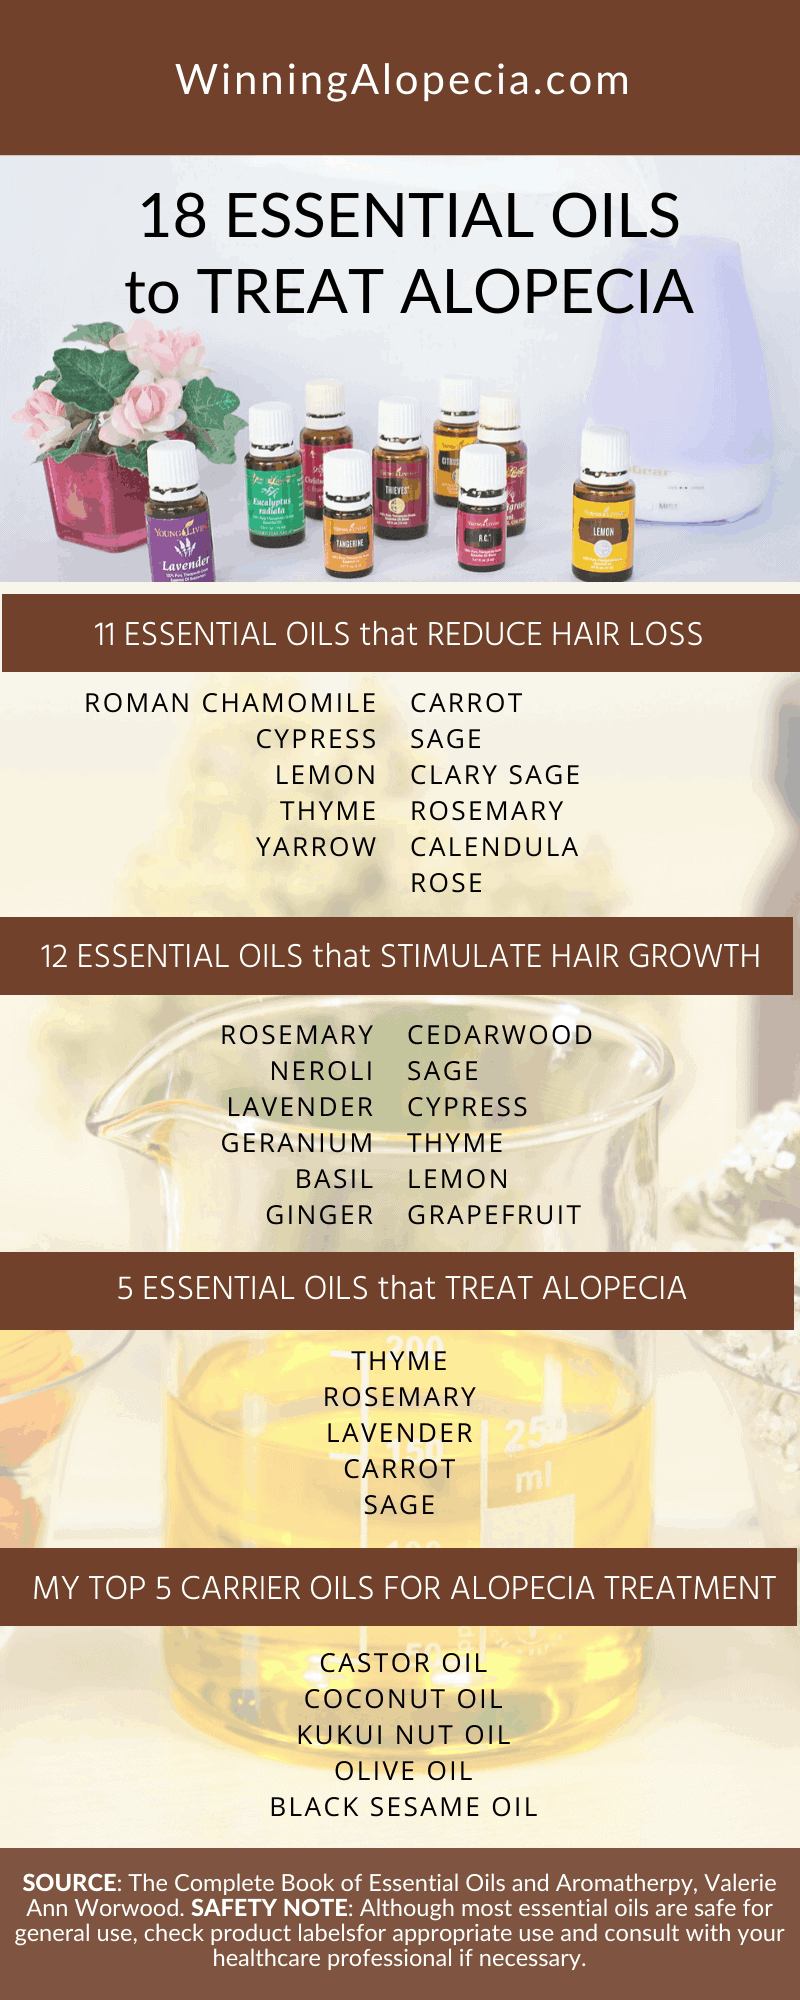 18 essential oils for hair growth and Alopecia treatment on Winning Alopecia